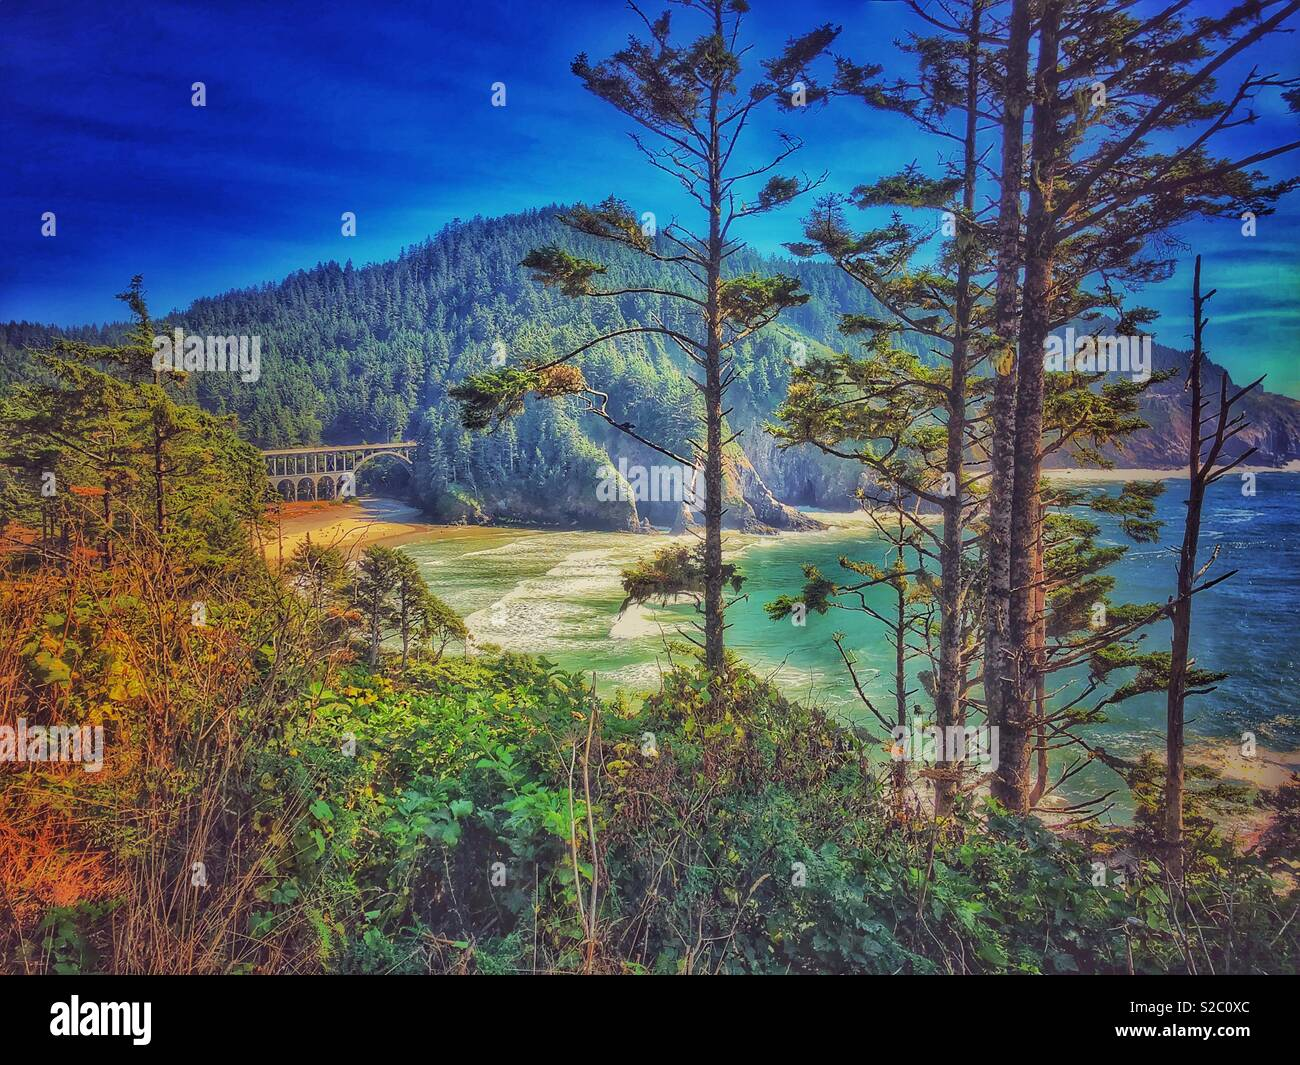 Ocean View - Stock Image